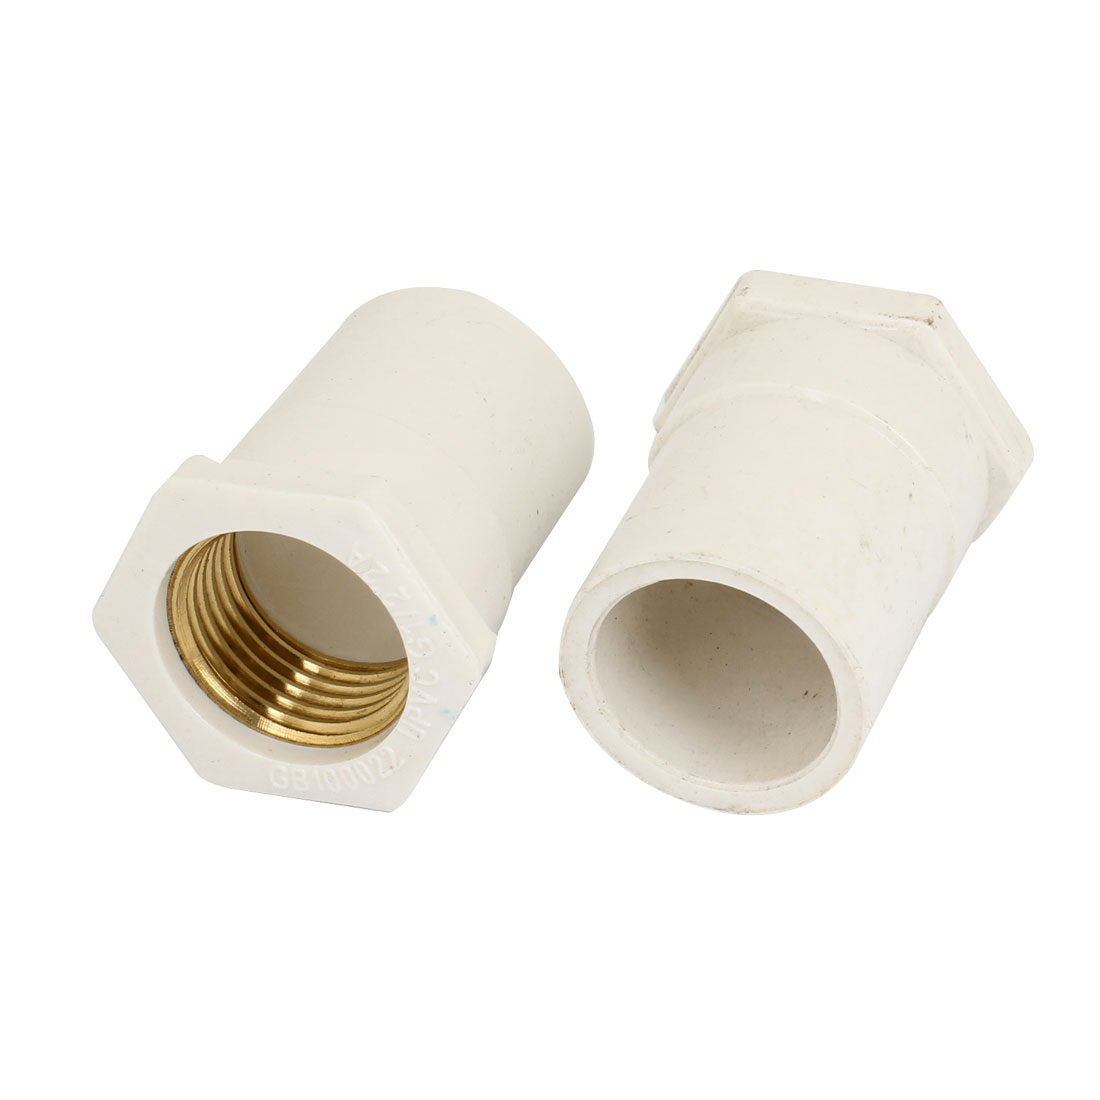 White 20mm Female Thread Straight Water Hose Pipe Fitting Connectors 2 Pcs